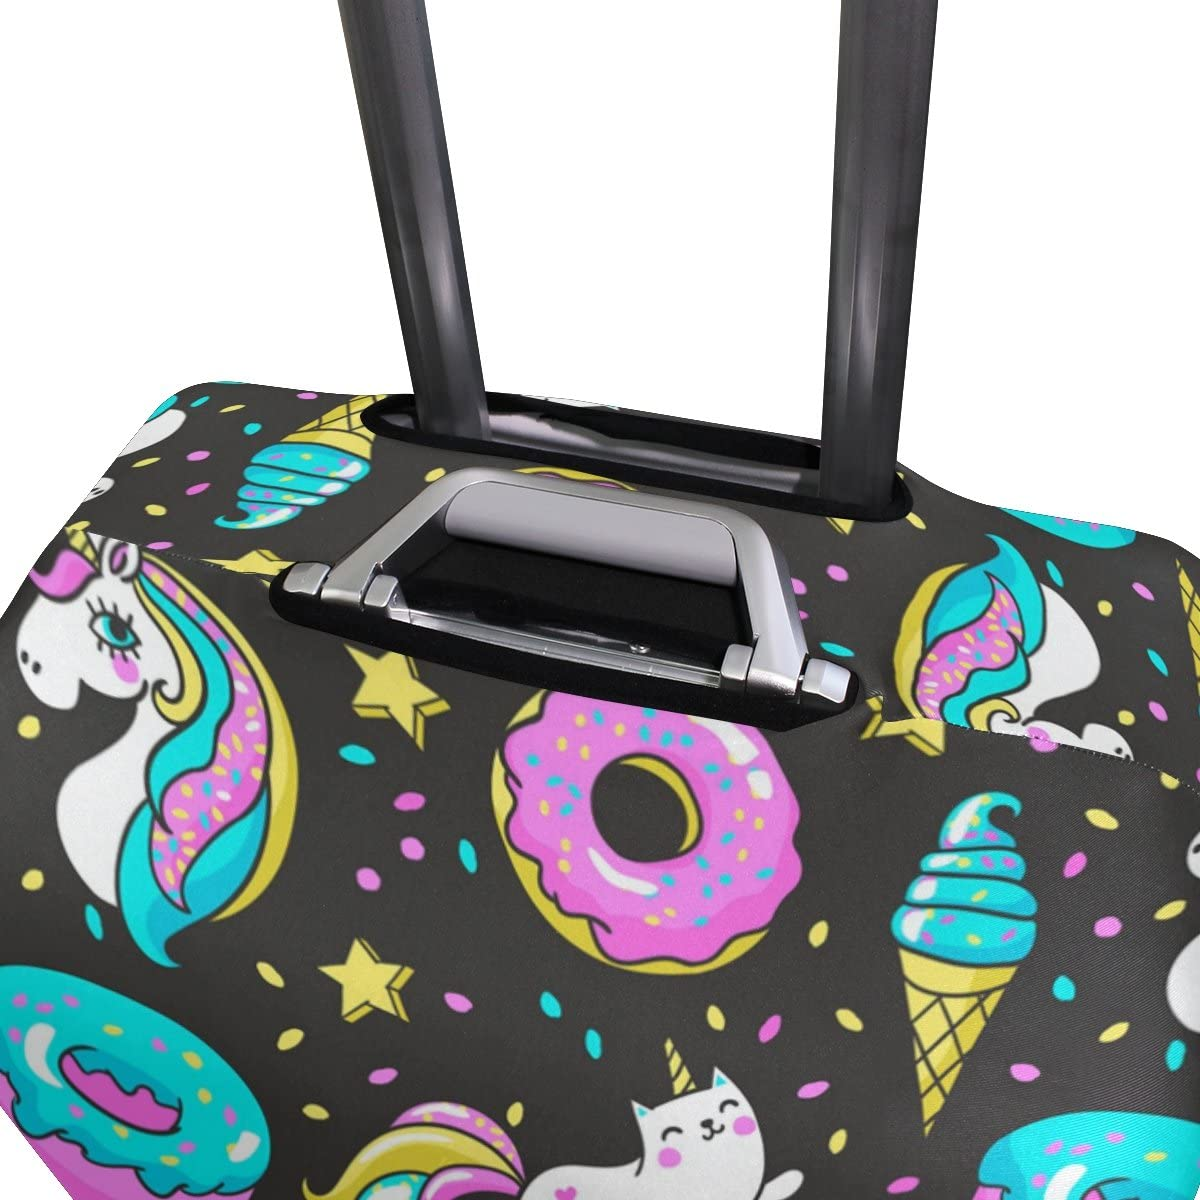 Elastic Travel Luggage Cover Unicorns Rainbow Donuts Suitcase Protector for 18-20 Inch Luggage